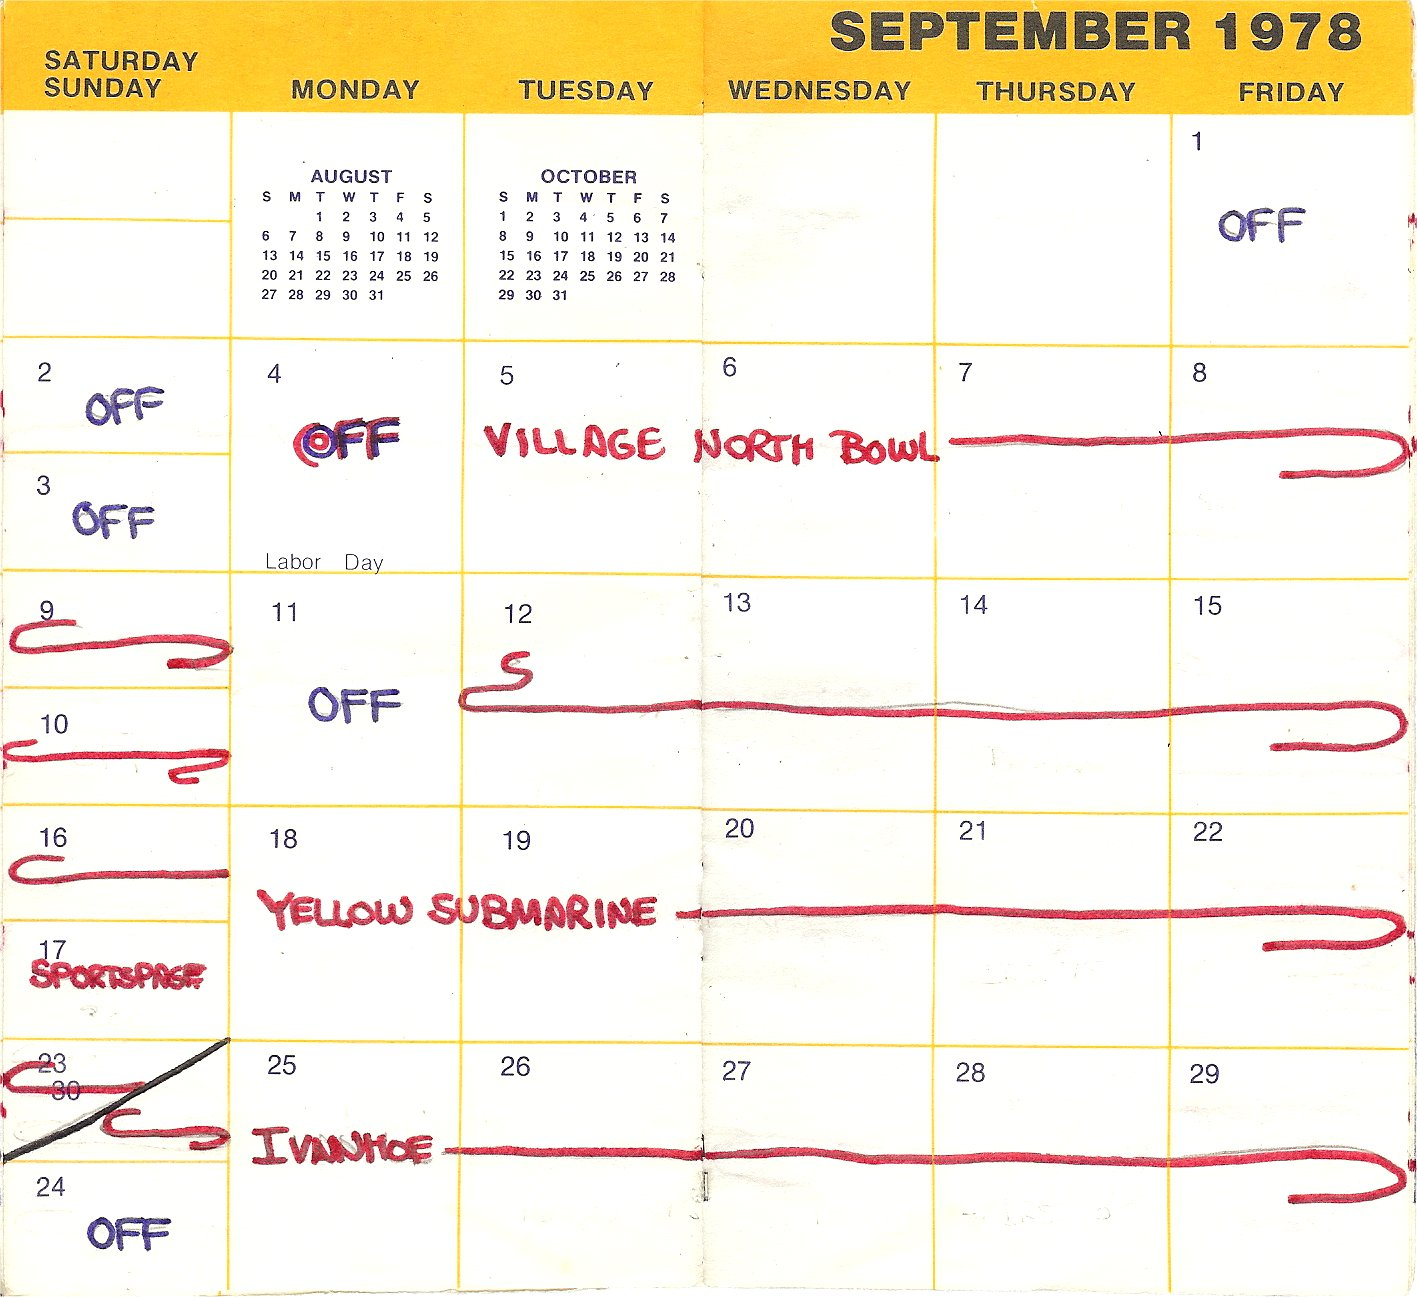 1978 Calendar September.From The Silver Laughter Booking Calendar For September 1978 The